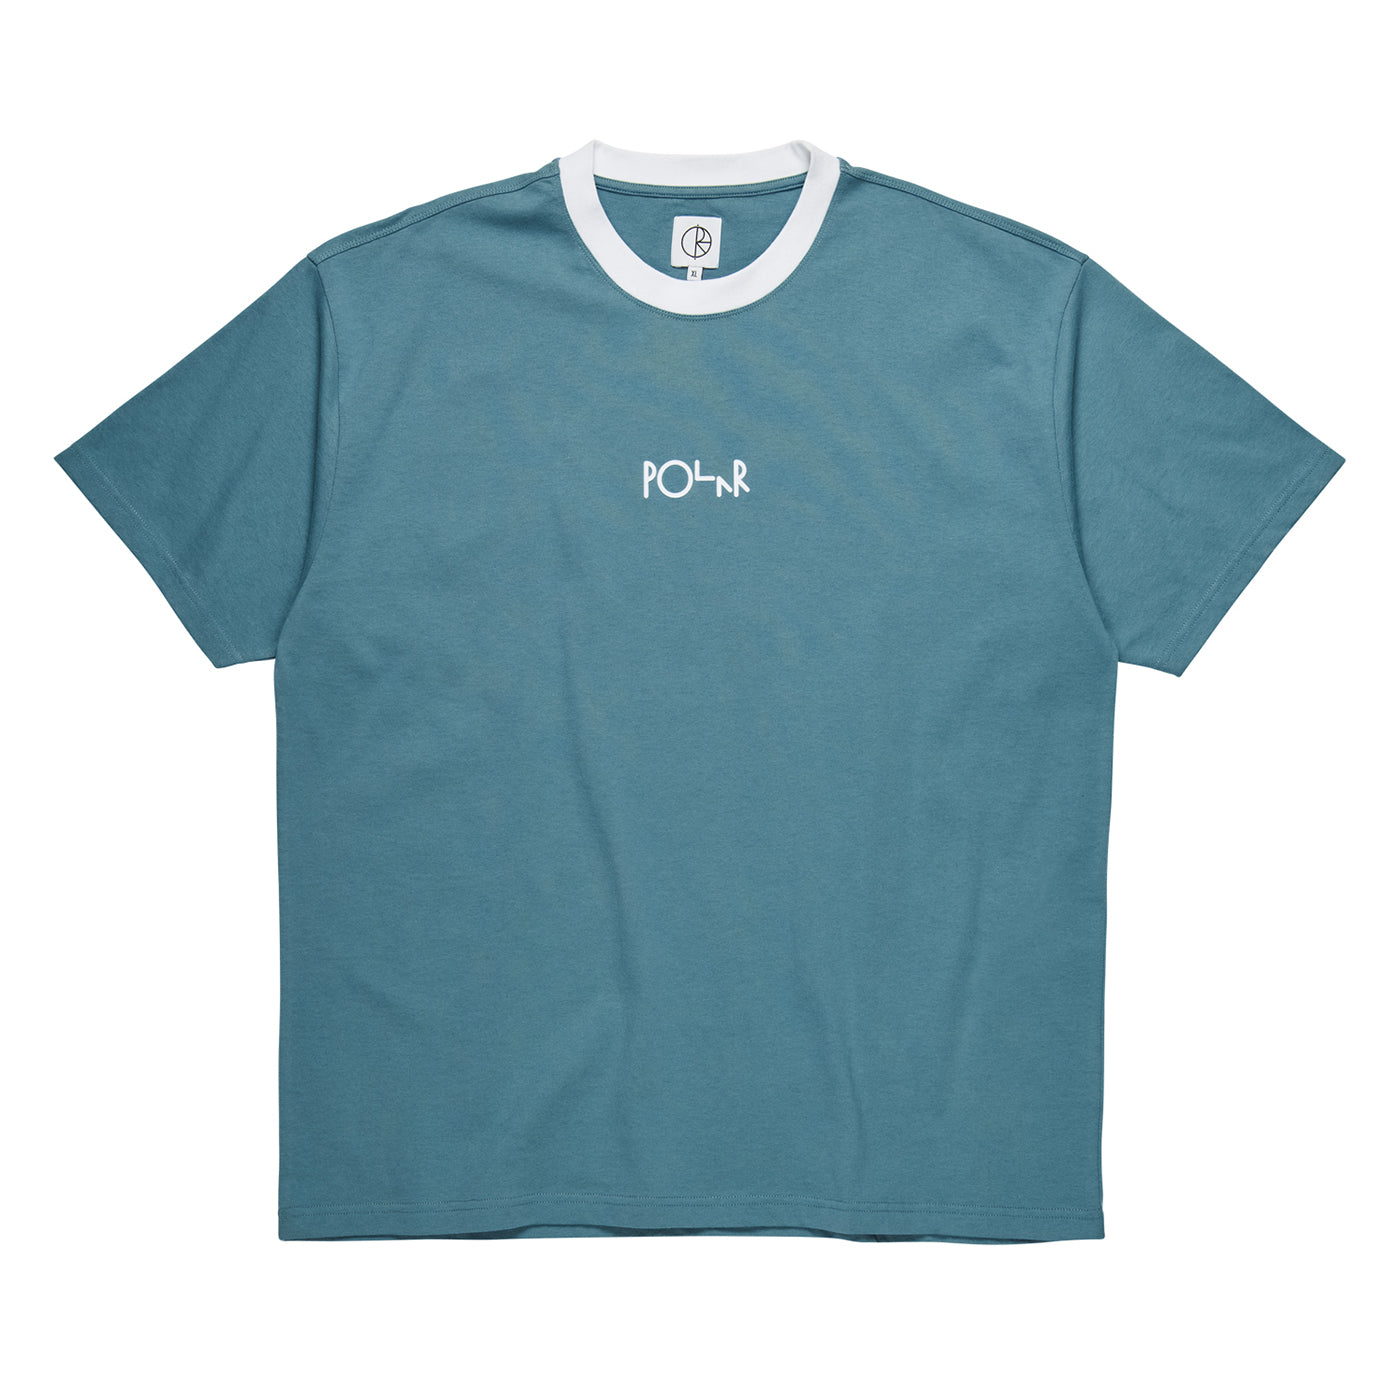 fddd948fa1ff Polar Skate Co Offside T Shirt - Grey Blue   White